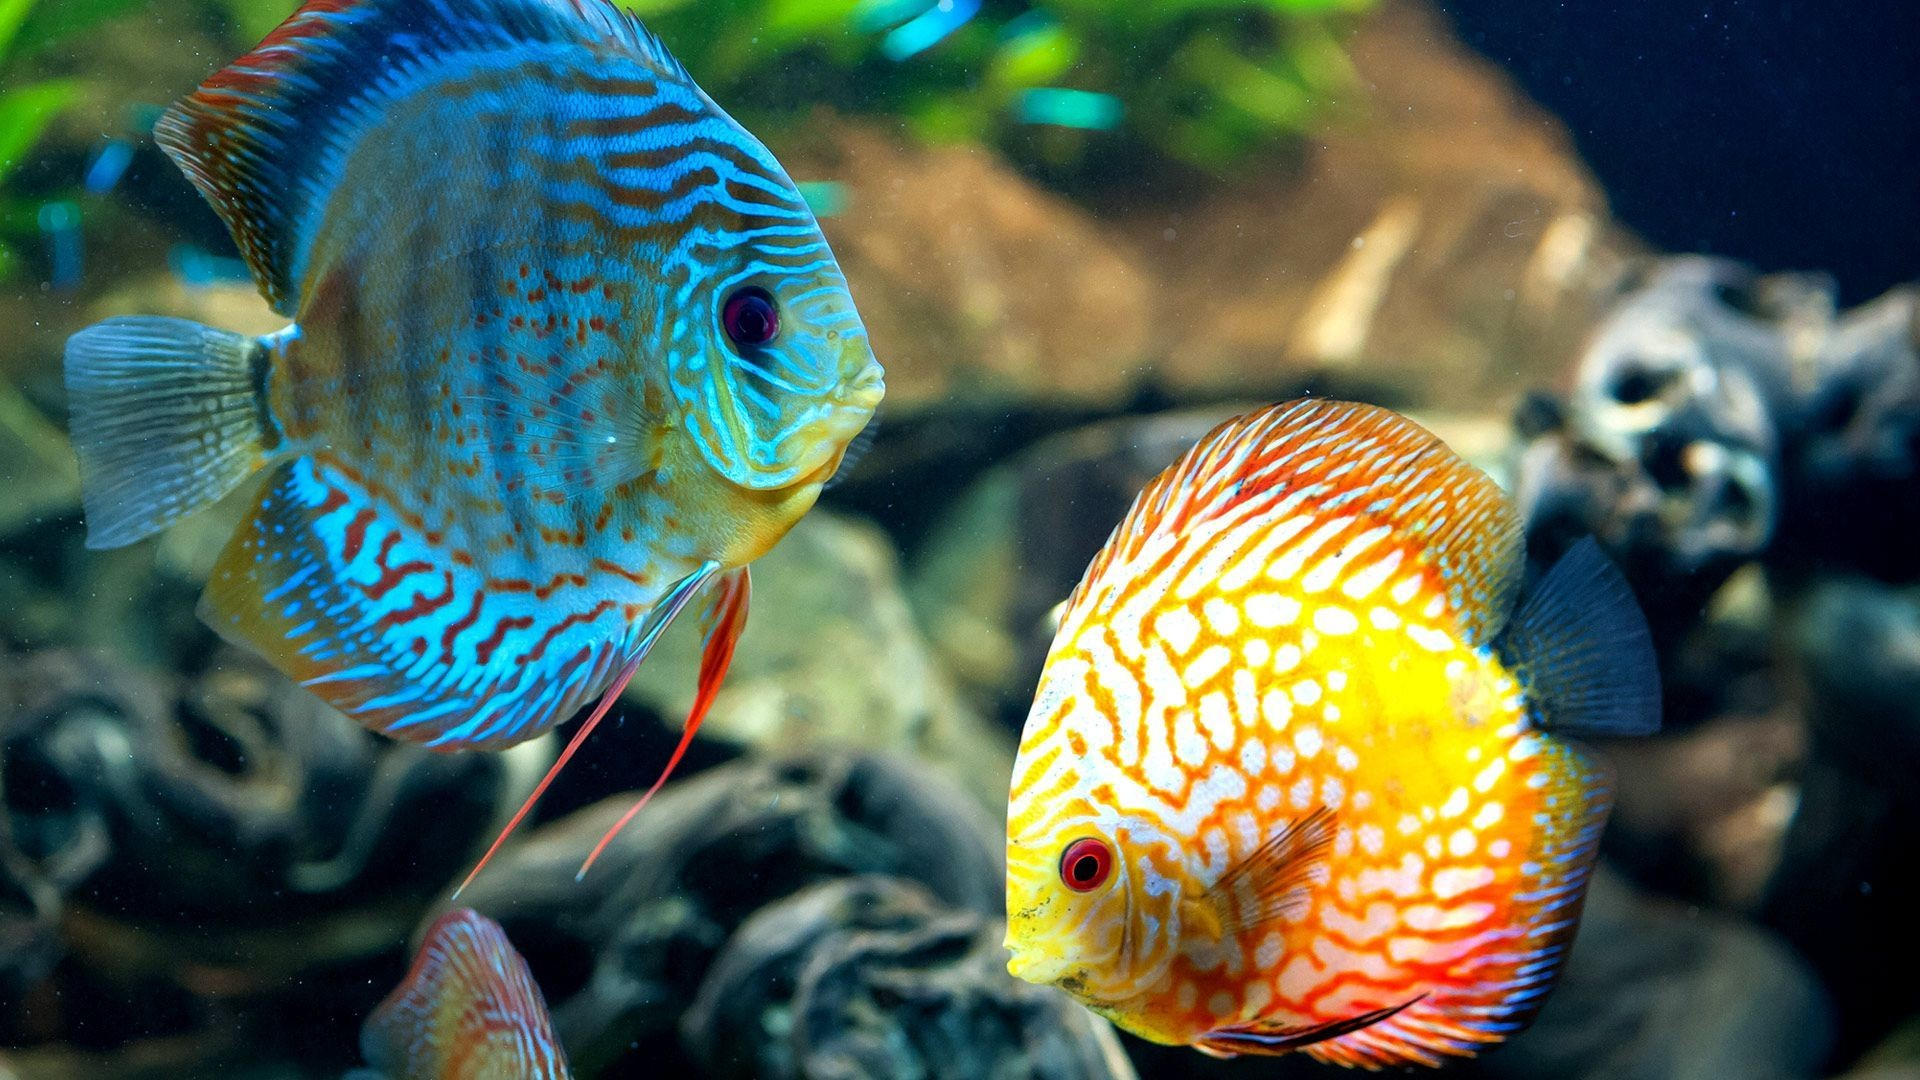 Coral Reef Fish wallpapers – Free full hd wallpapers for 1080p .